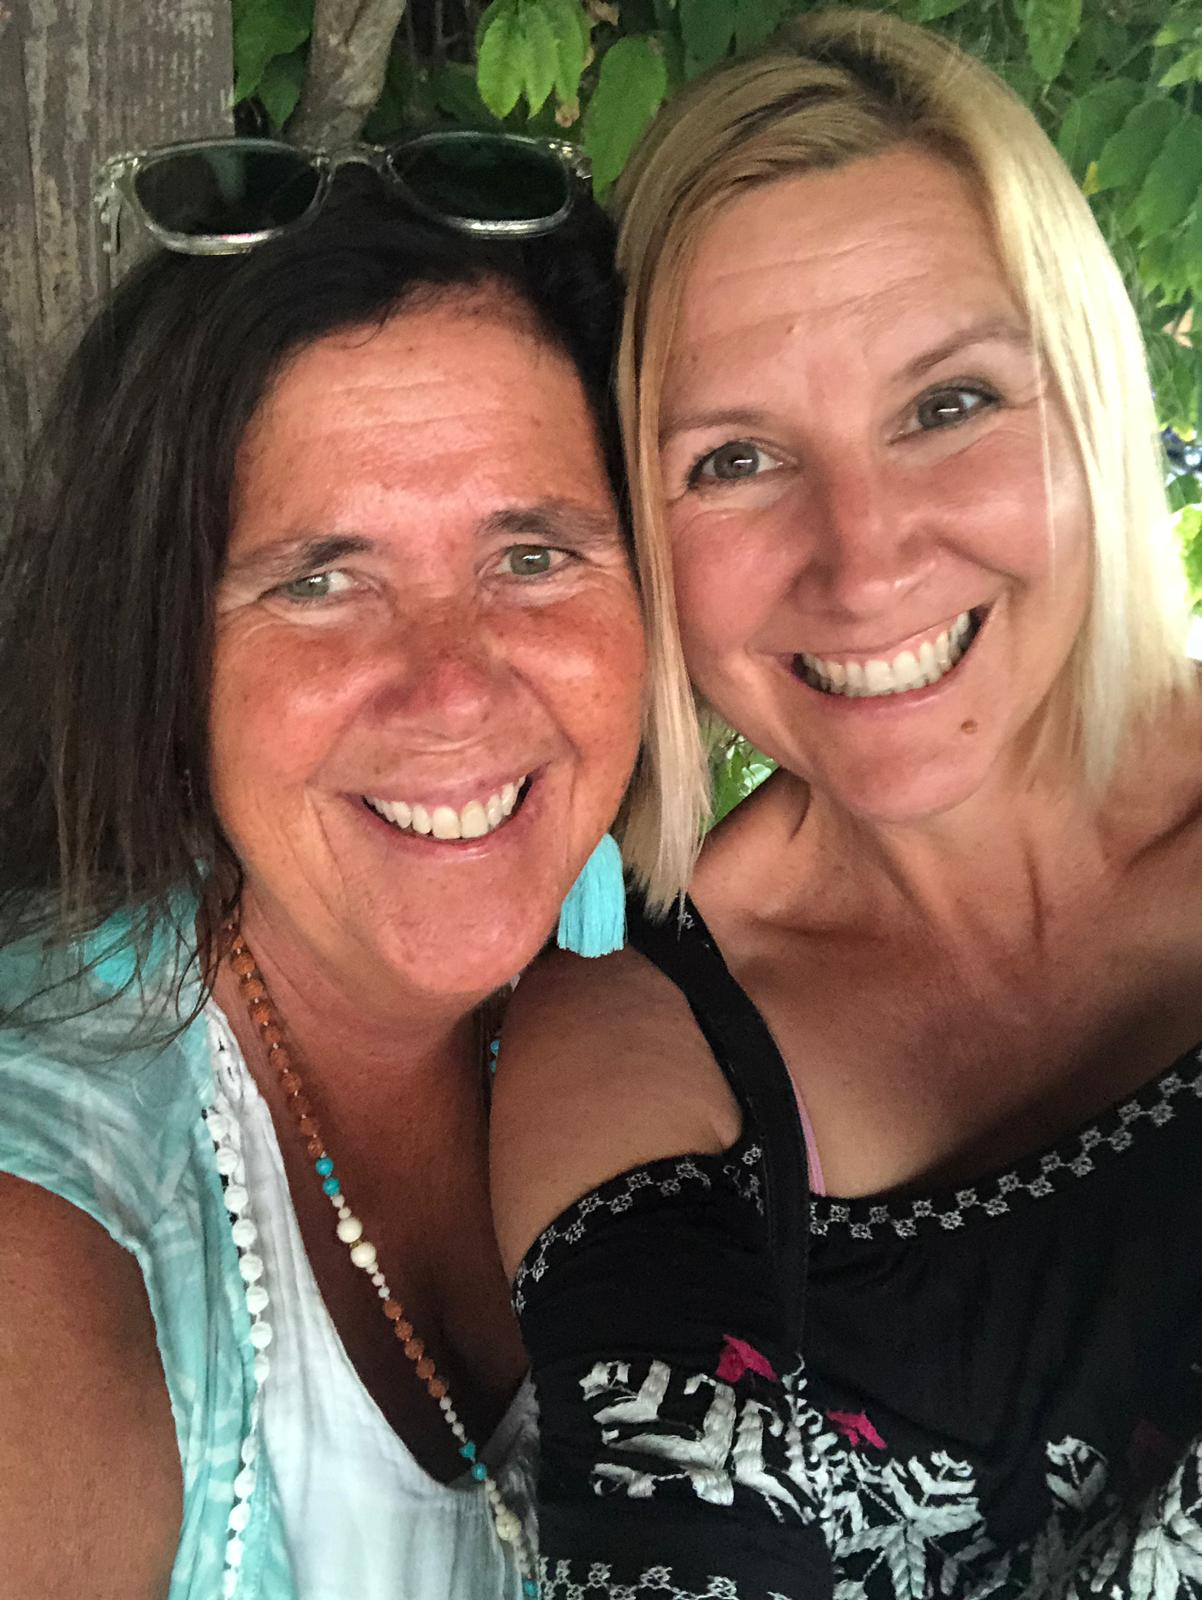 My Masters degree in Counseling as well as my advanced Life Coaching Certification will help me guide you. Arianna's 25+ years of coaching experience will aid your healing journey. - We authentically look forward to being with you at this special event.With deep ❤,Kate & Arianna